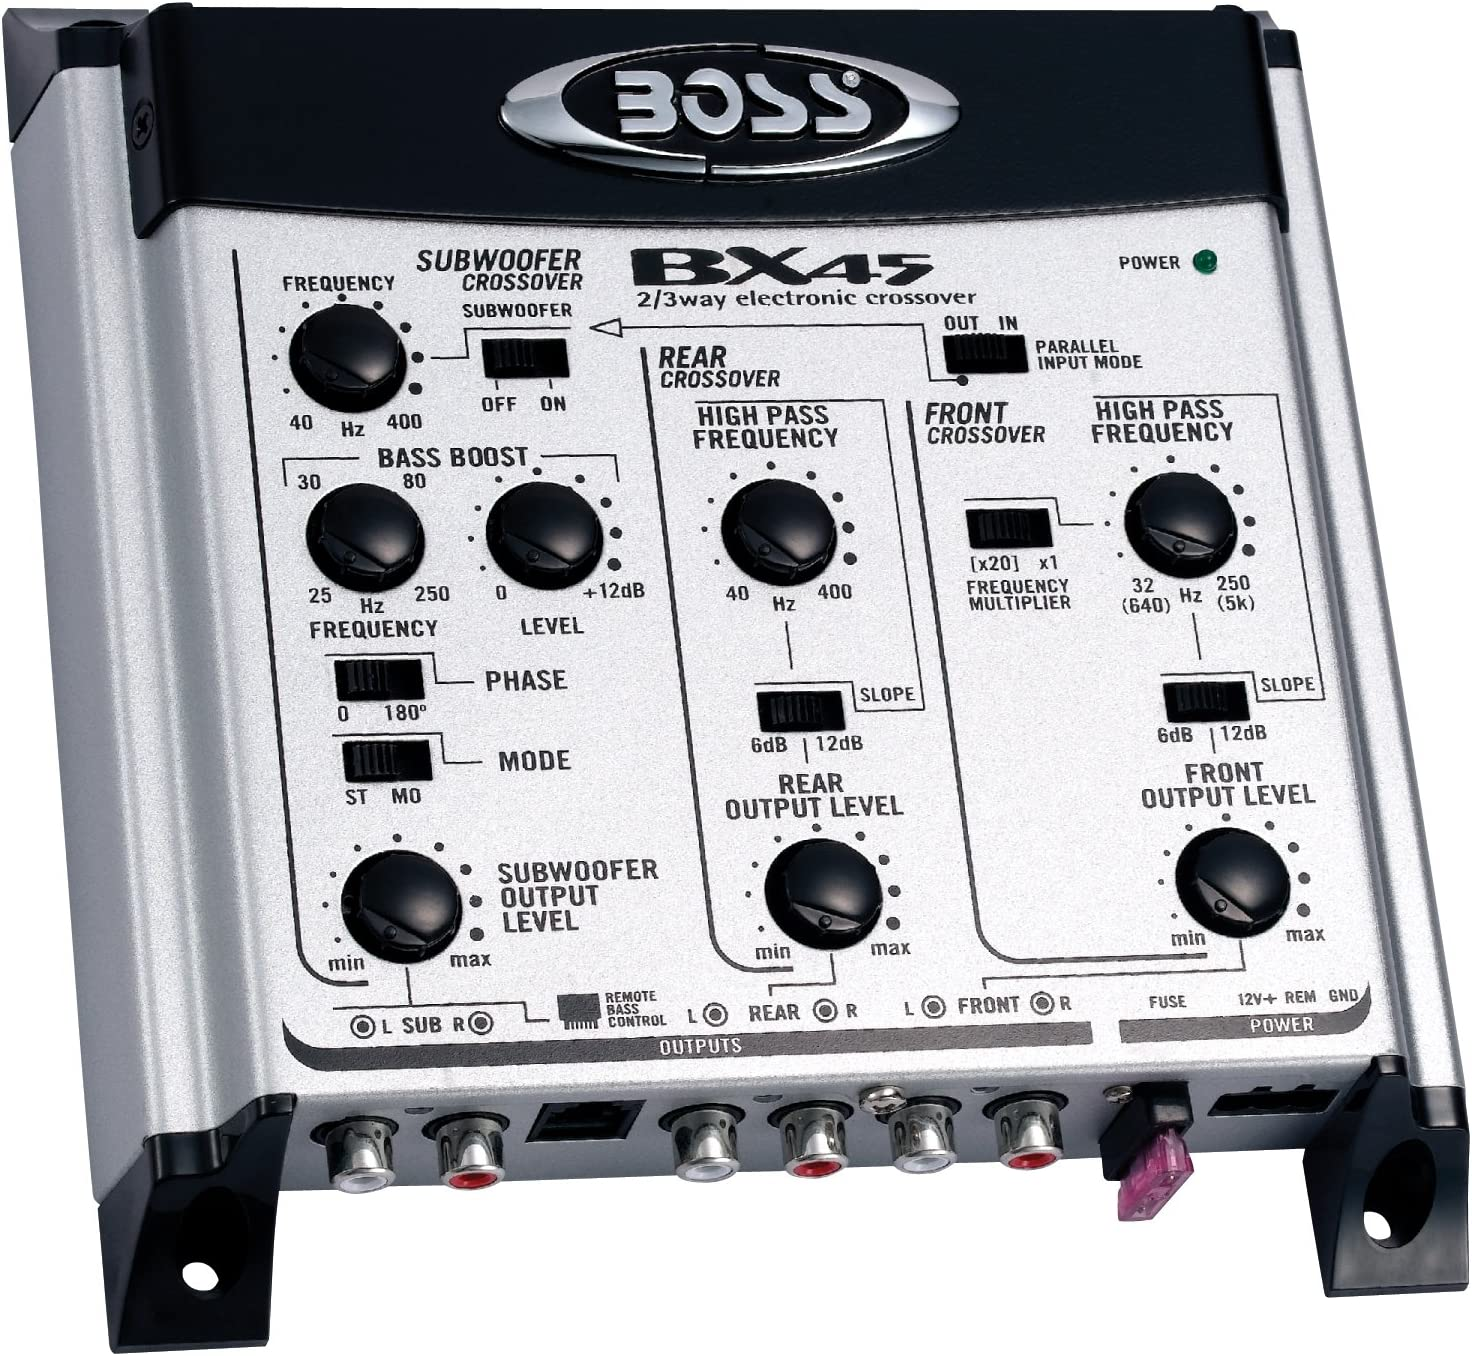 Boss Audio Systems Bx45 2 3 Way Pre-amp Car Electronic Crossover - Variable High Pass Filter 40 Hz - 8 Khz Selectable Crossover Slopes, Selectable Phase Maximum Input Voltage 4.5 Volts, SILVER AND BLACK